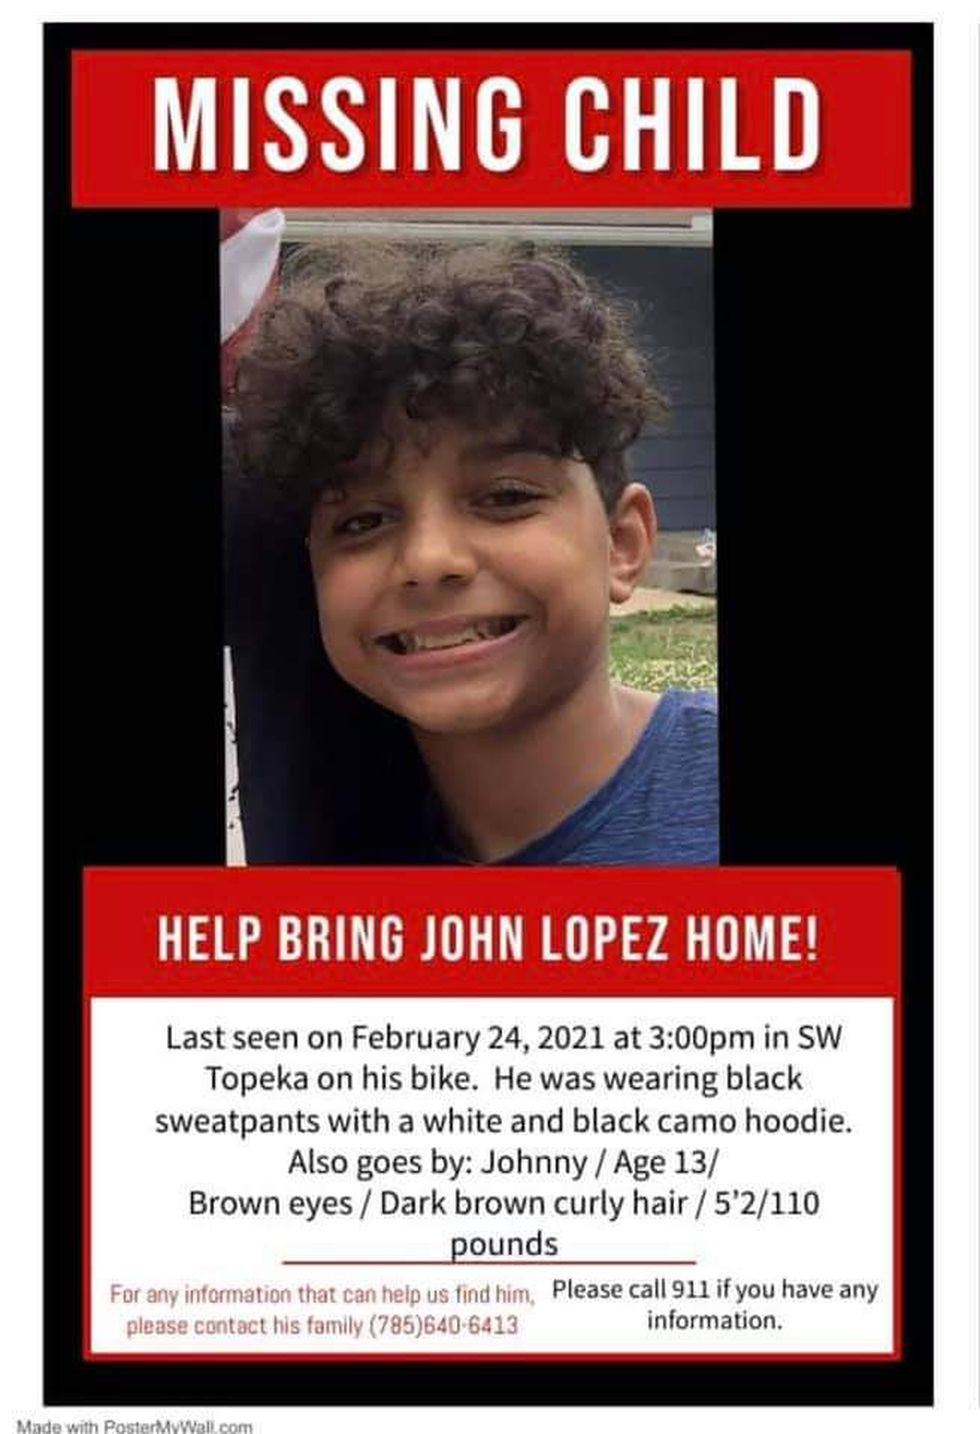 John Lopez has been reported to TPD as a runaway.